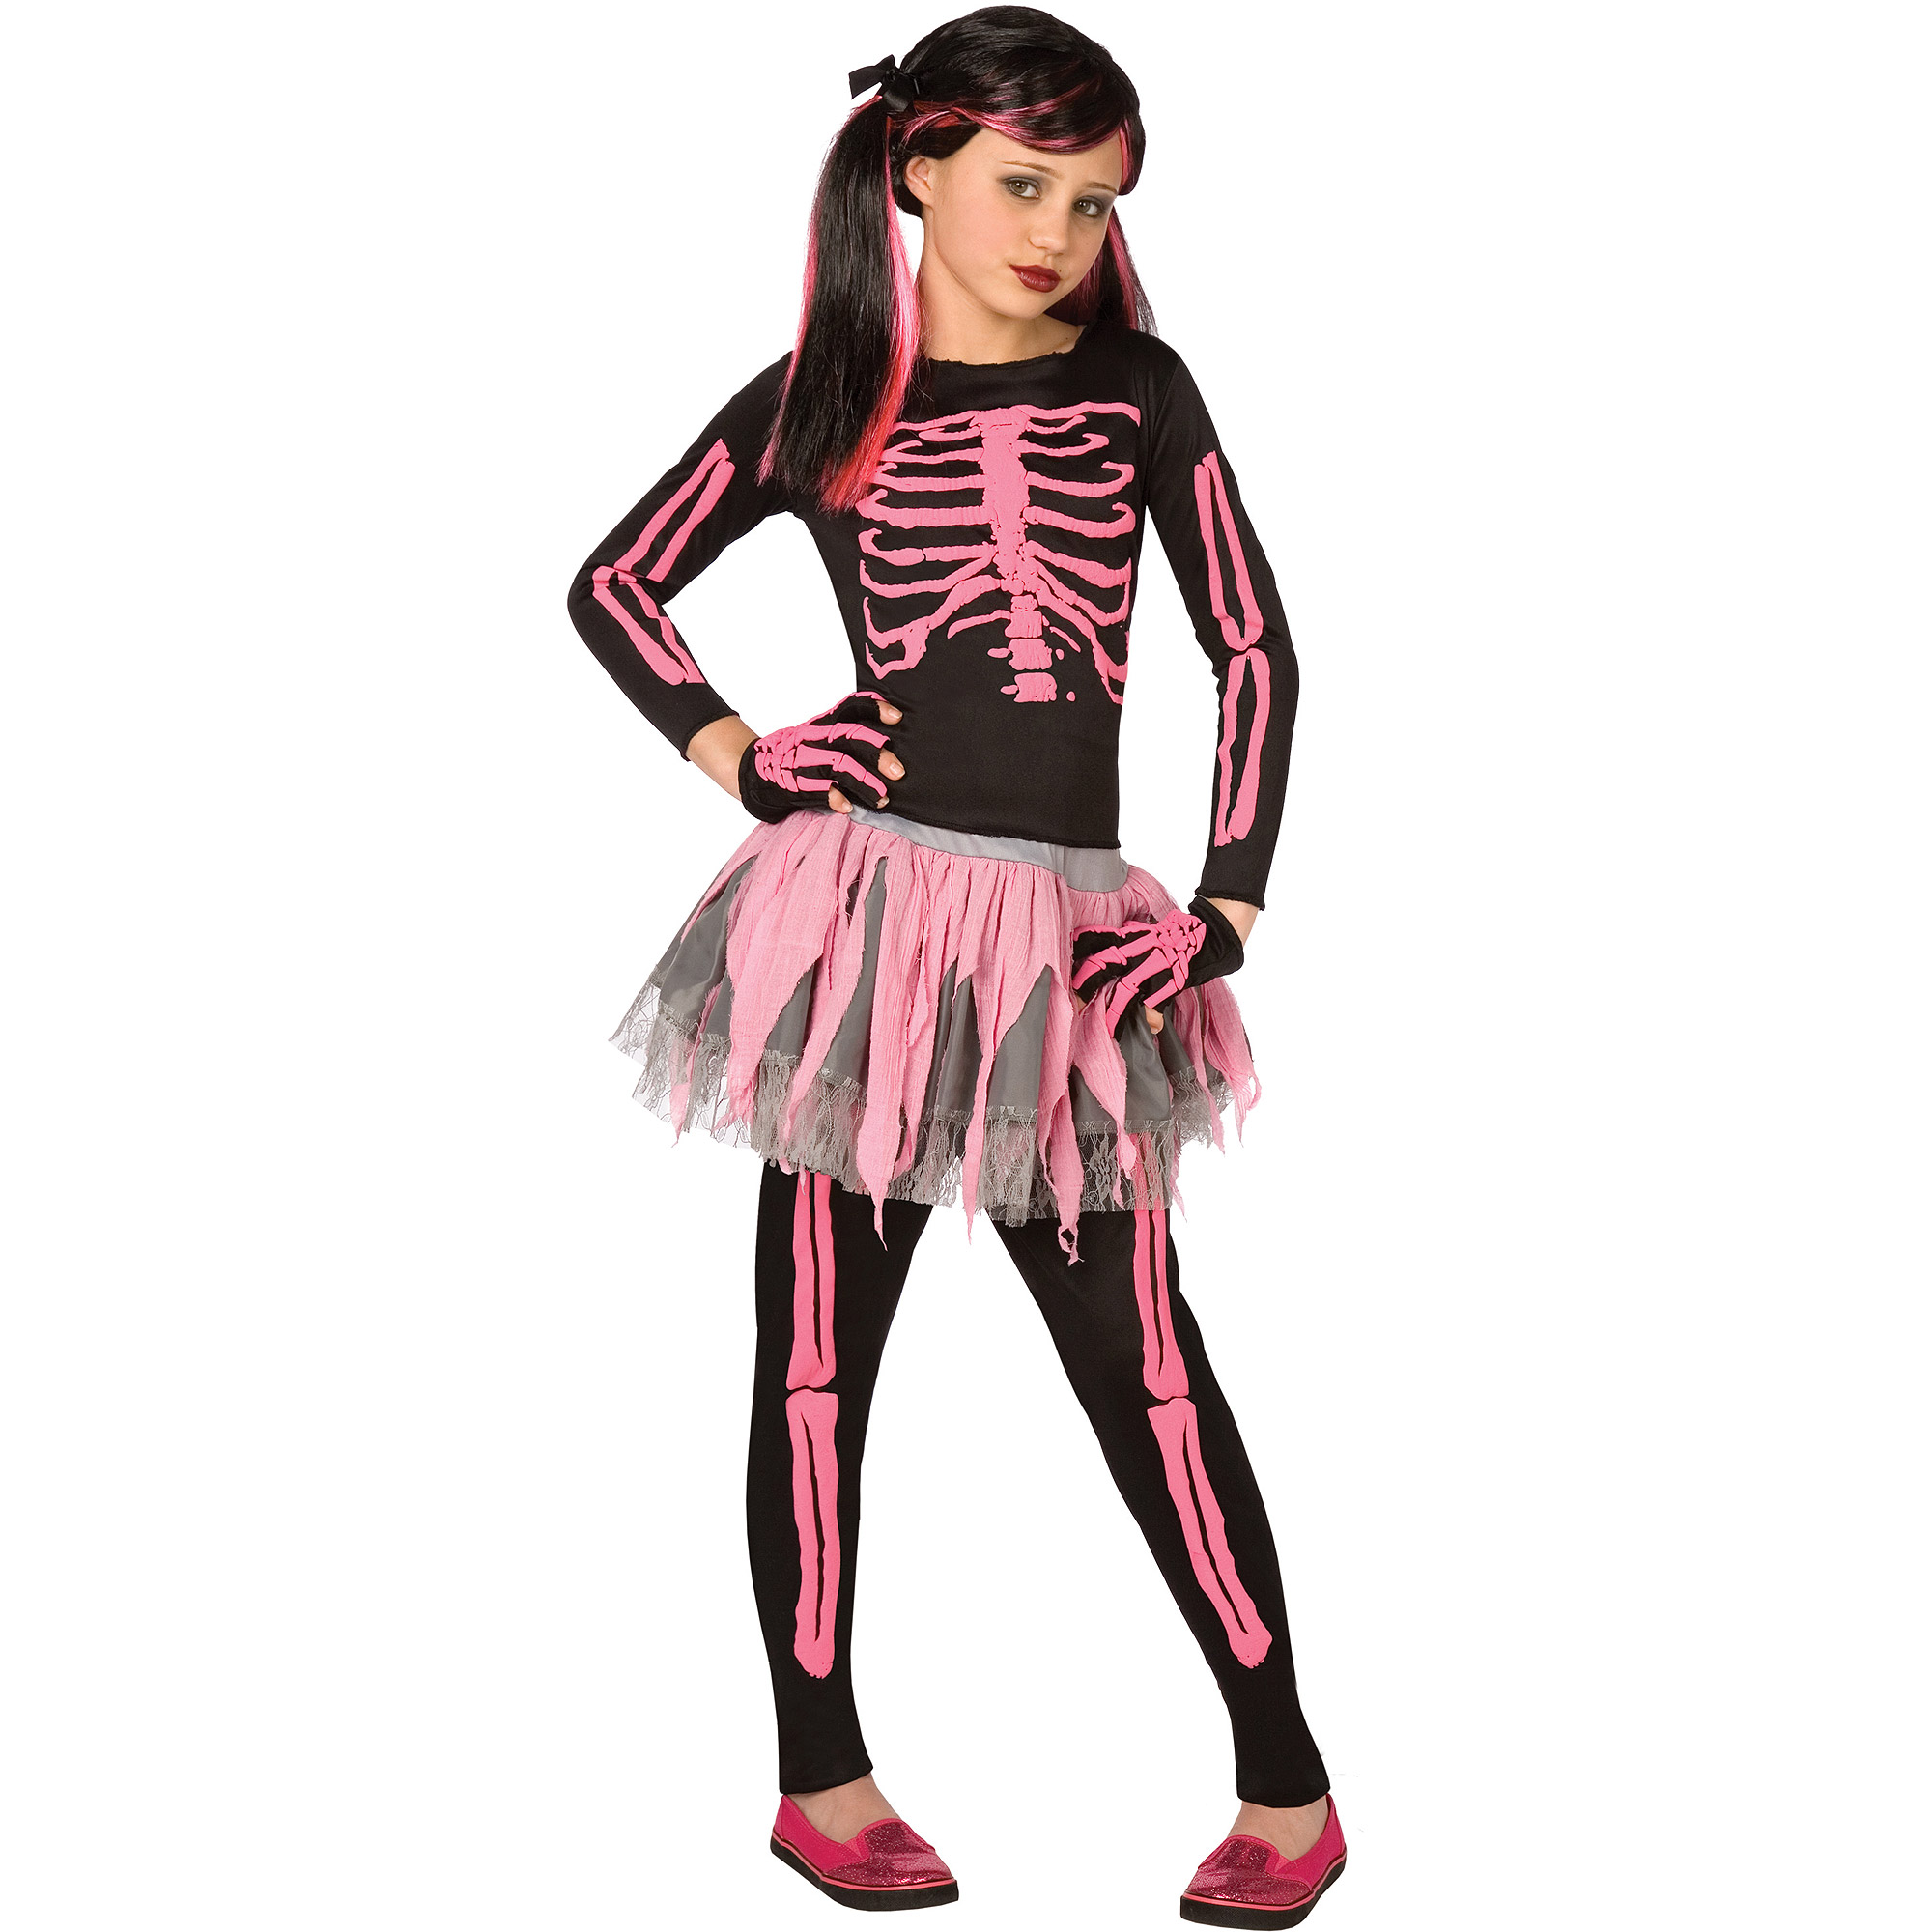 Girl Pink Skeleton Medium Halloween Dress Up / Role Play Costume